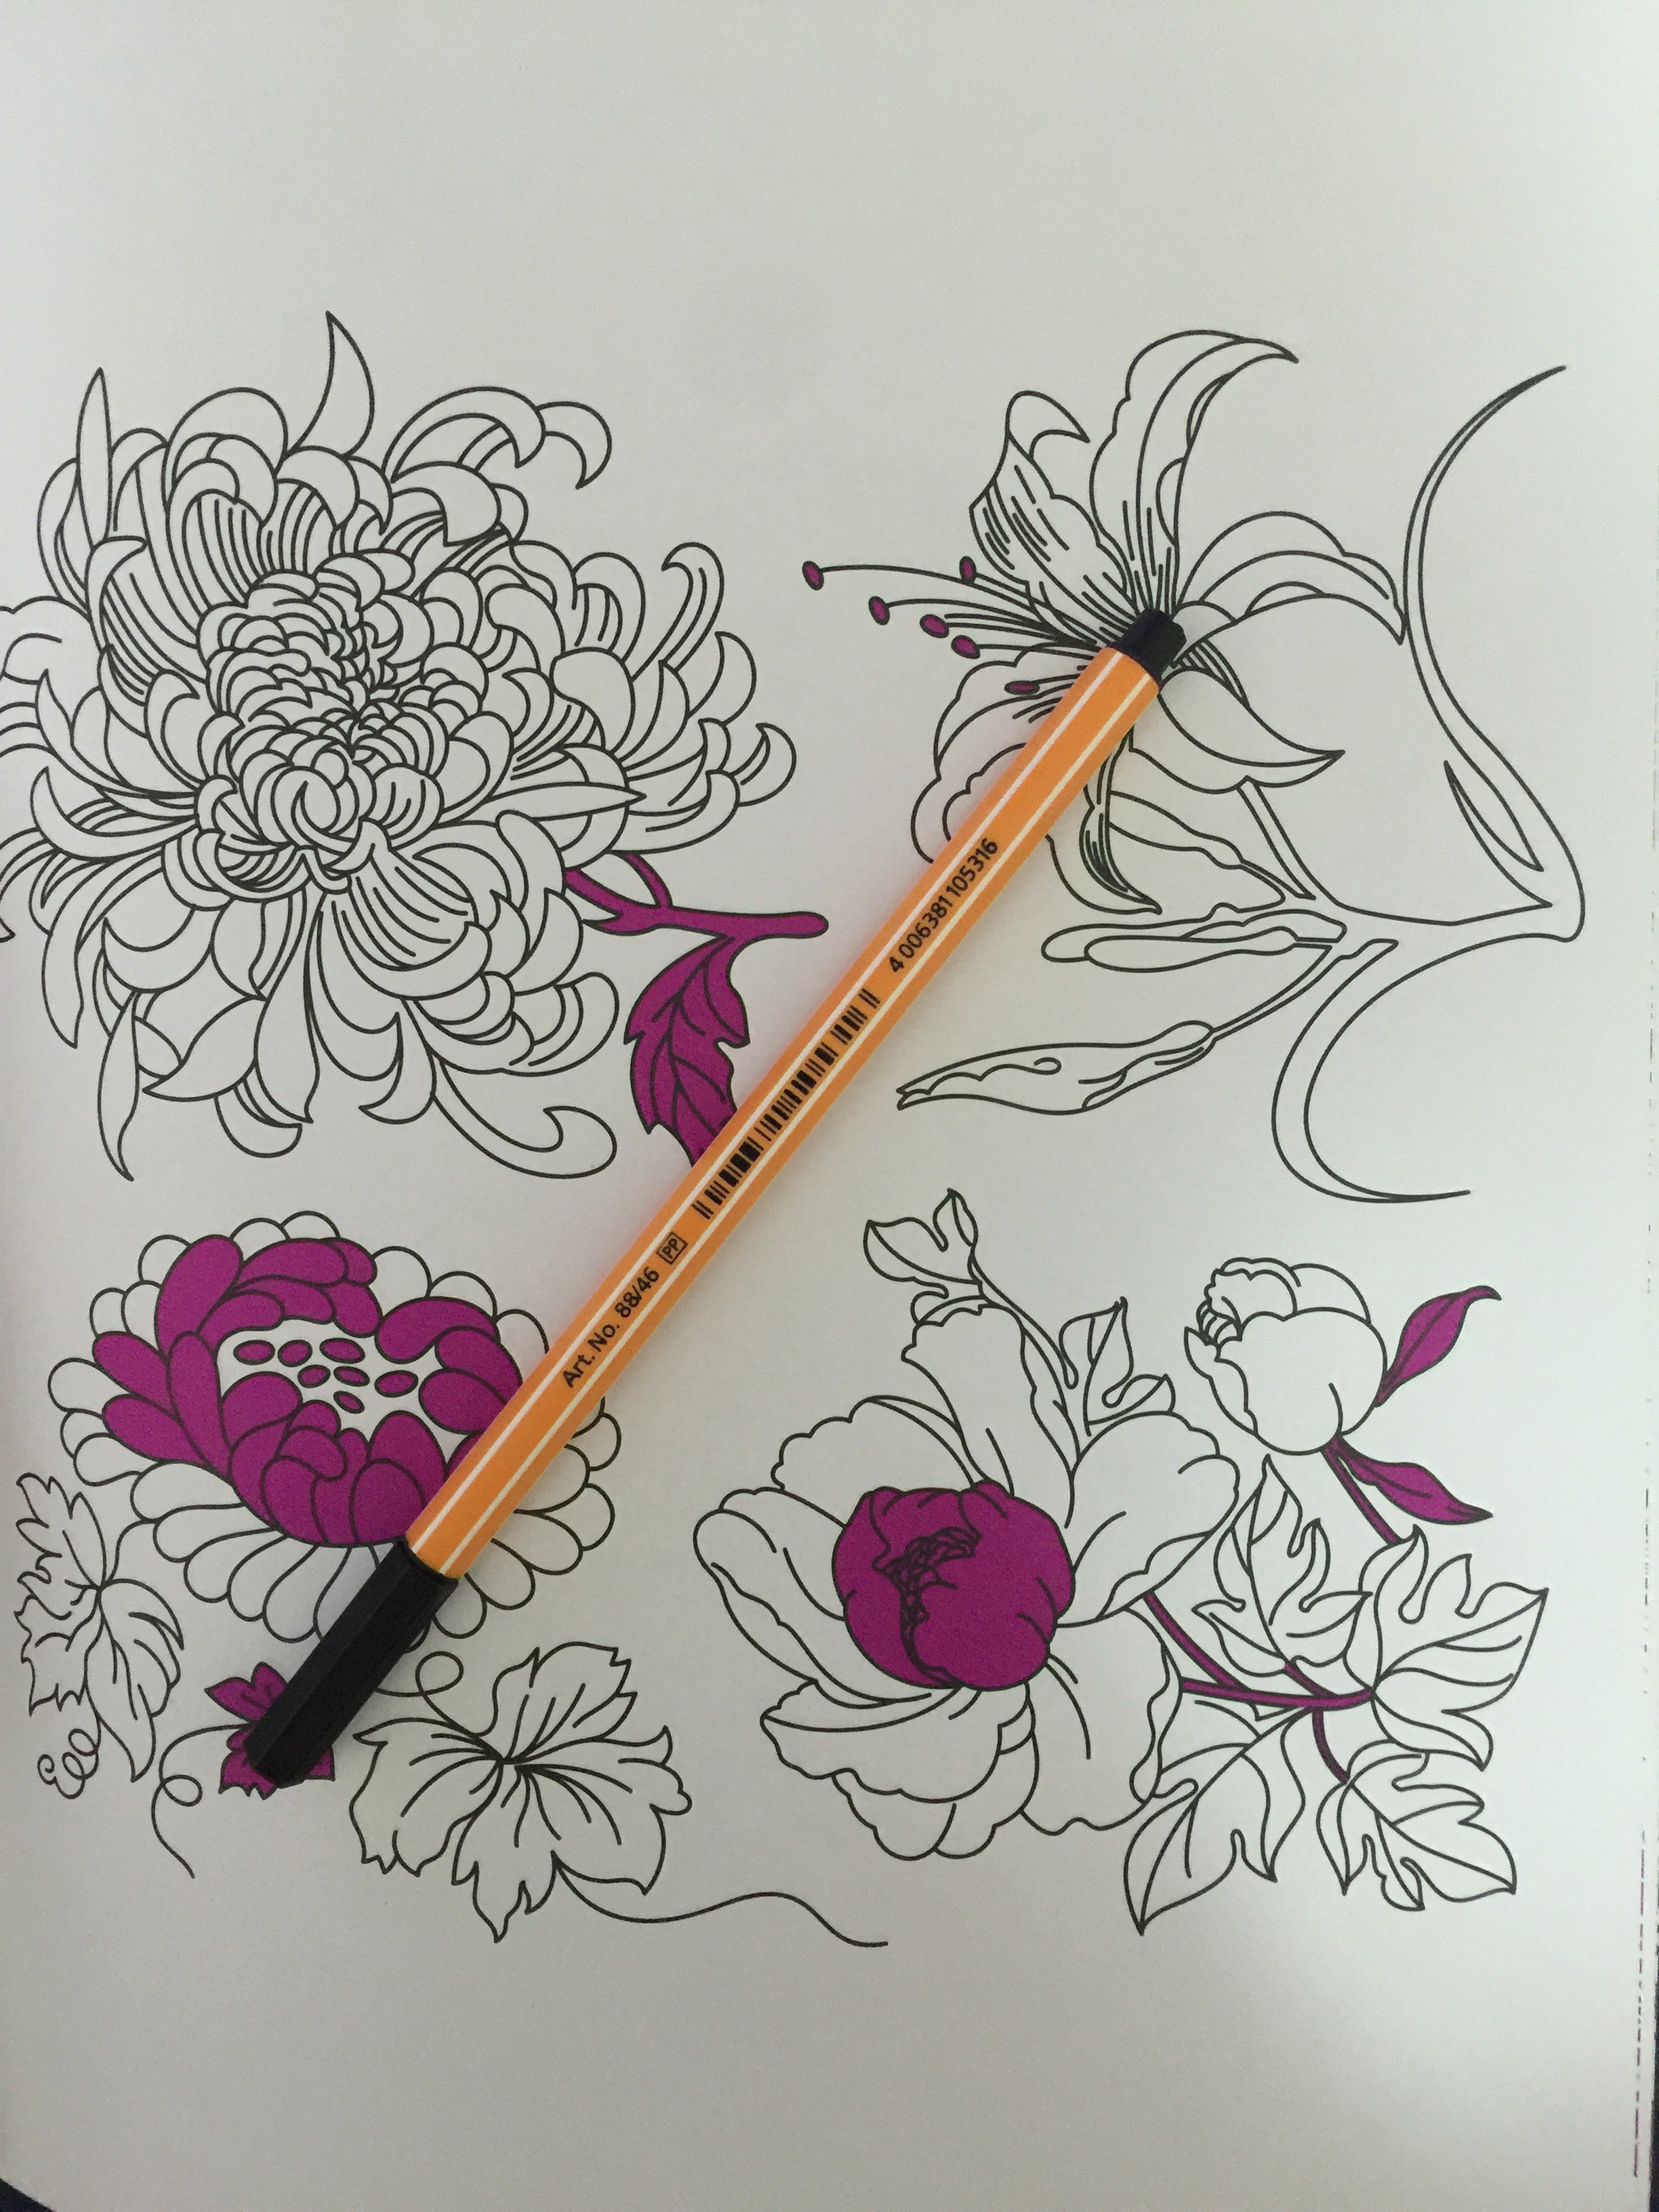 Colouring pencils for adults reviews - Coloring Reviews Adult Flowers Completed Garden Color Coloring Colour Pencils Art Review Therapy Anti Stress